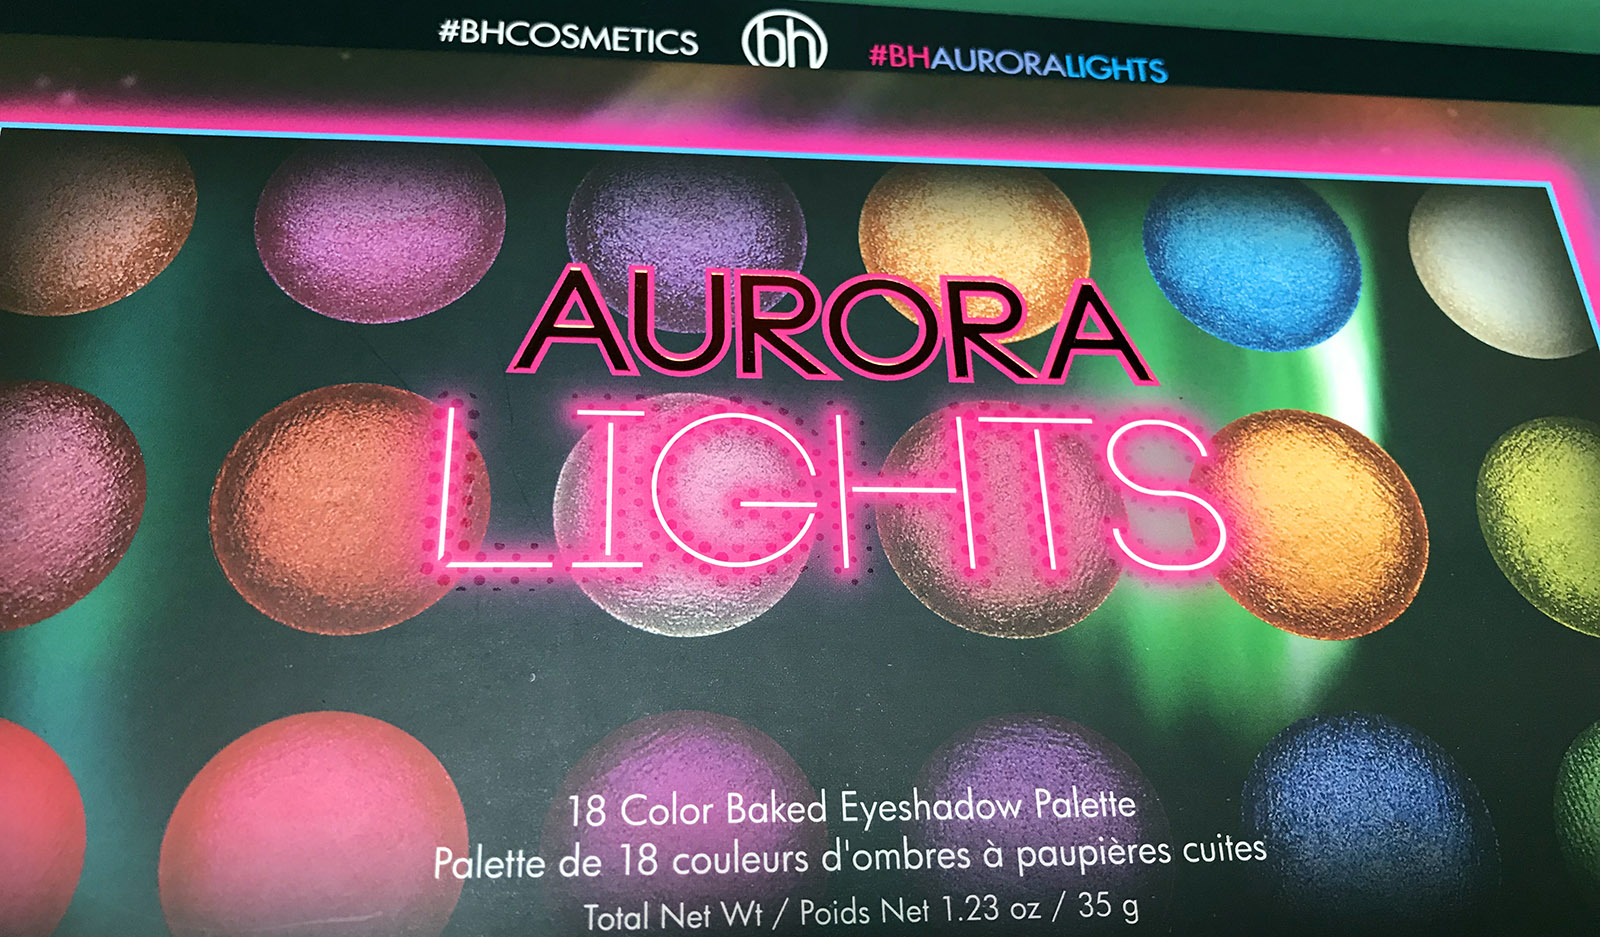 BH_Cosmetics_Launches_a_New_Palette_Aurora_Lights_VIVA_GLAM_Magazine_Main_Image